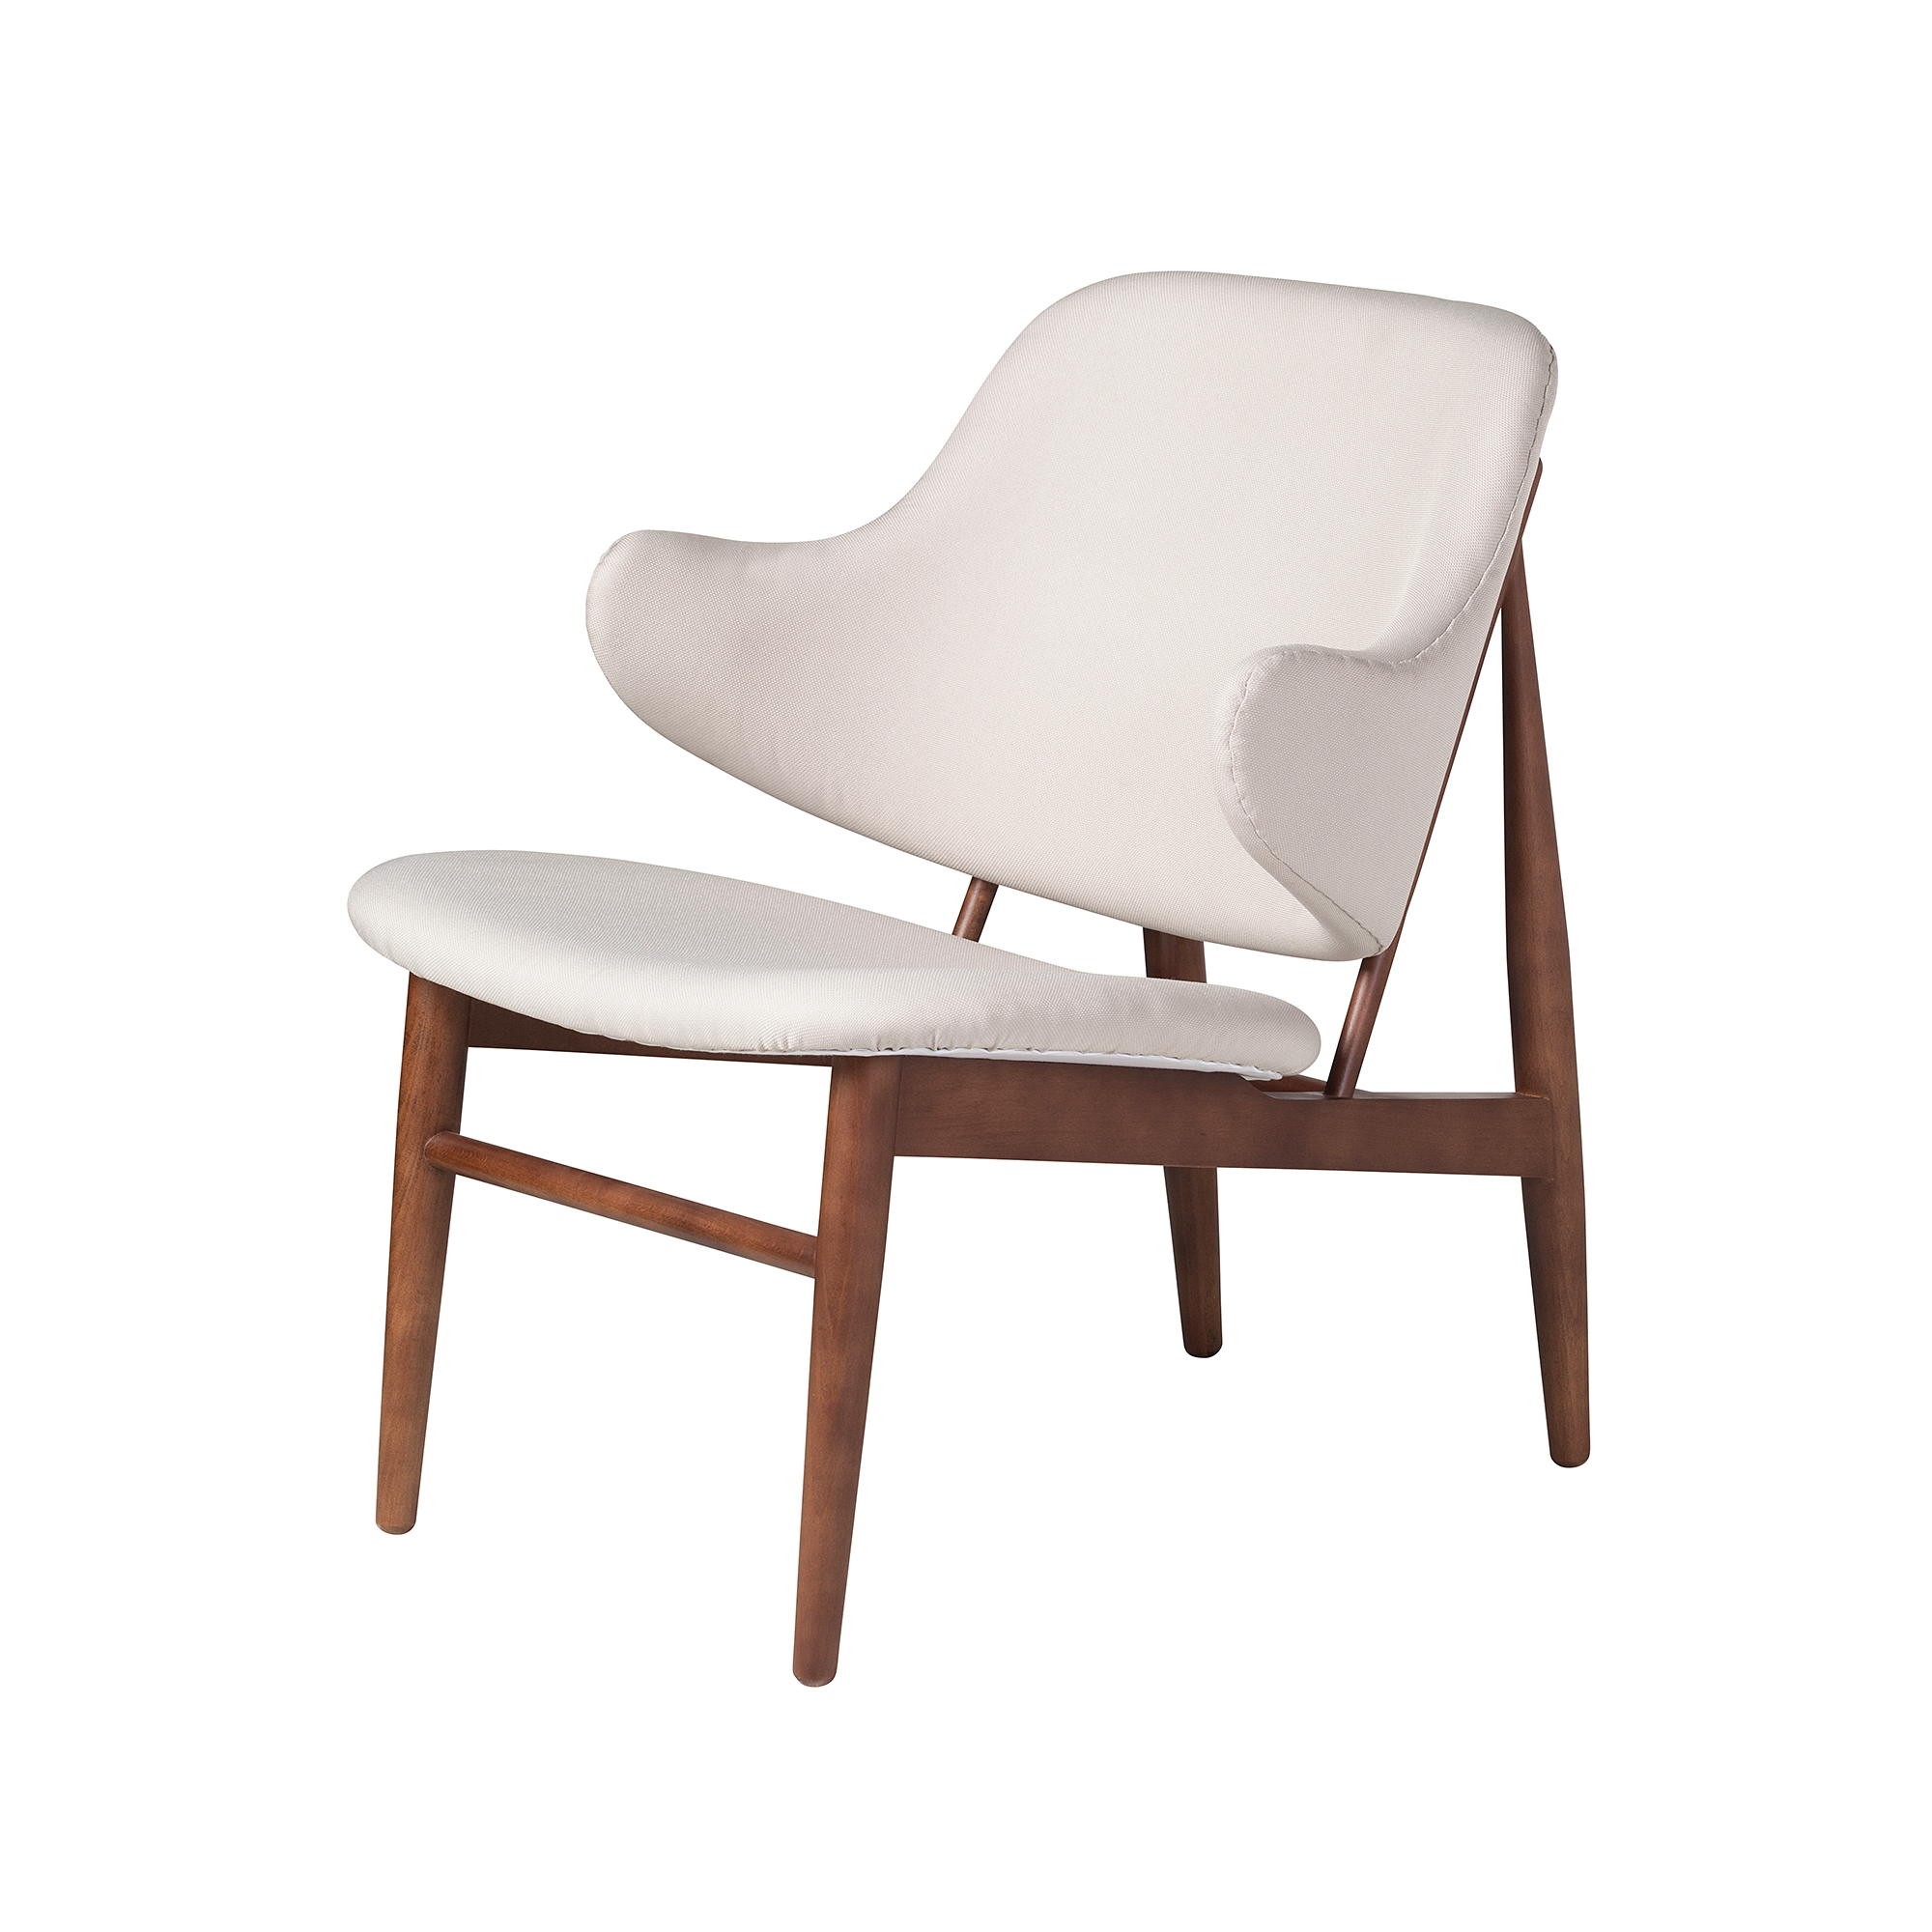 Marvelous Romi Wood Lounge Chair In White European Linen Alphanode Cool Chair Designs And Ideas Alphanodeonline